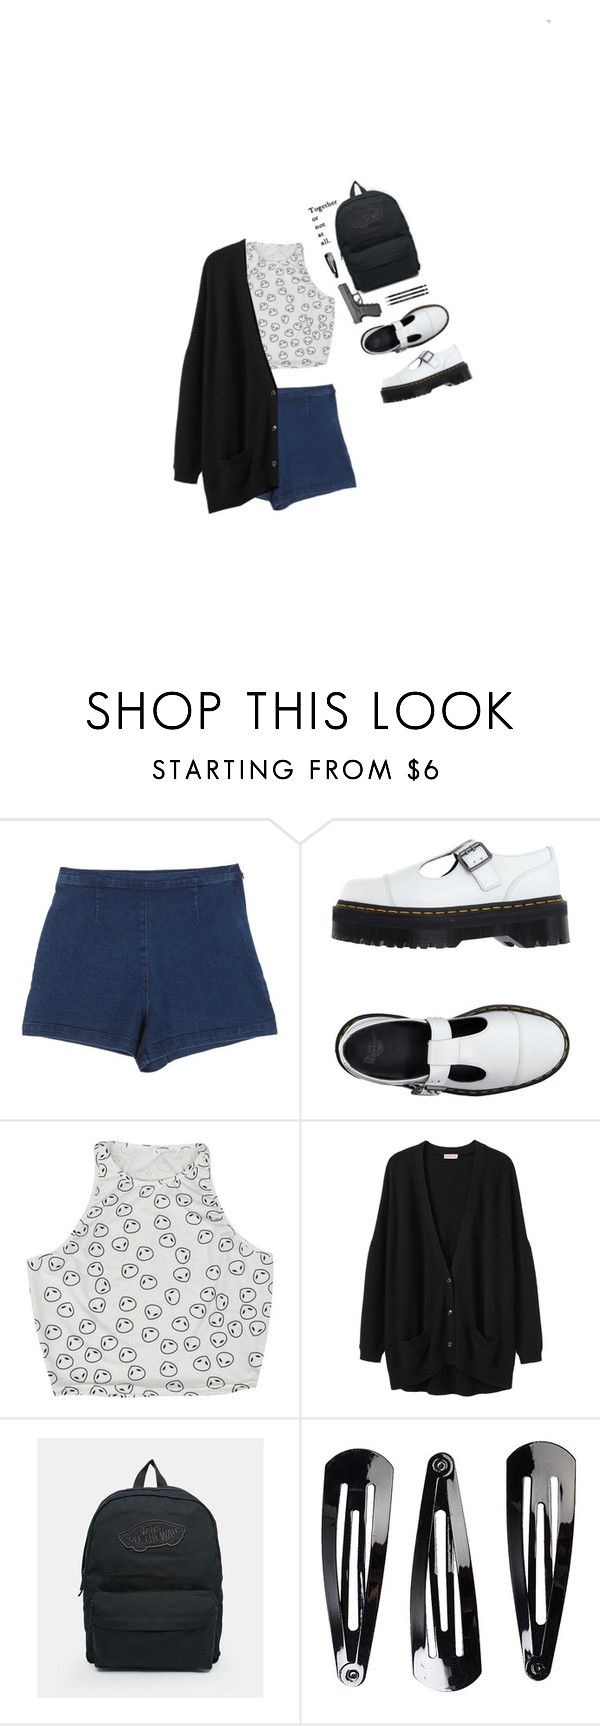 """""""Together or not at all."""" by h3li ❤ liked on Polyvore featuring Dr. Martens, Chicnova Fashion, Organic by John Patrick, Vans, NLY Accessories, Spring, school, everyday, autumn and denimshorts"""